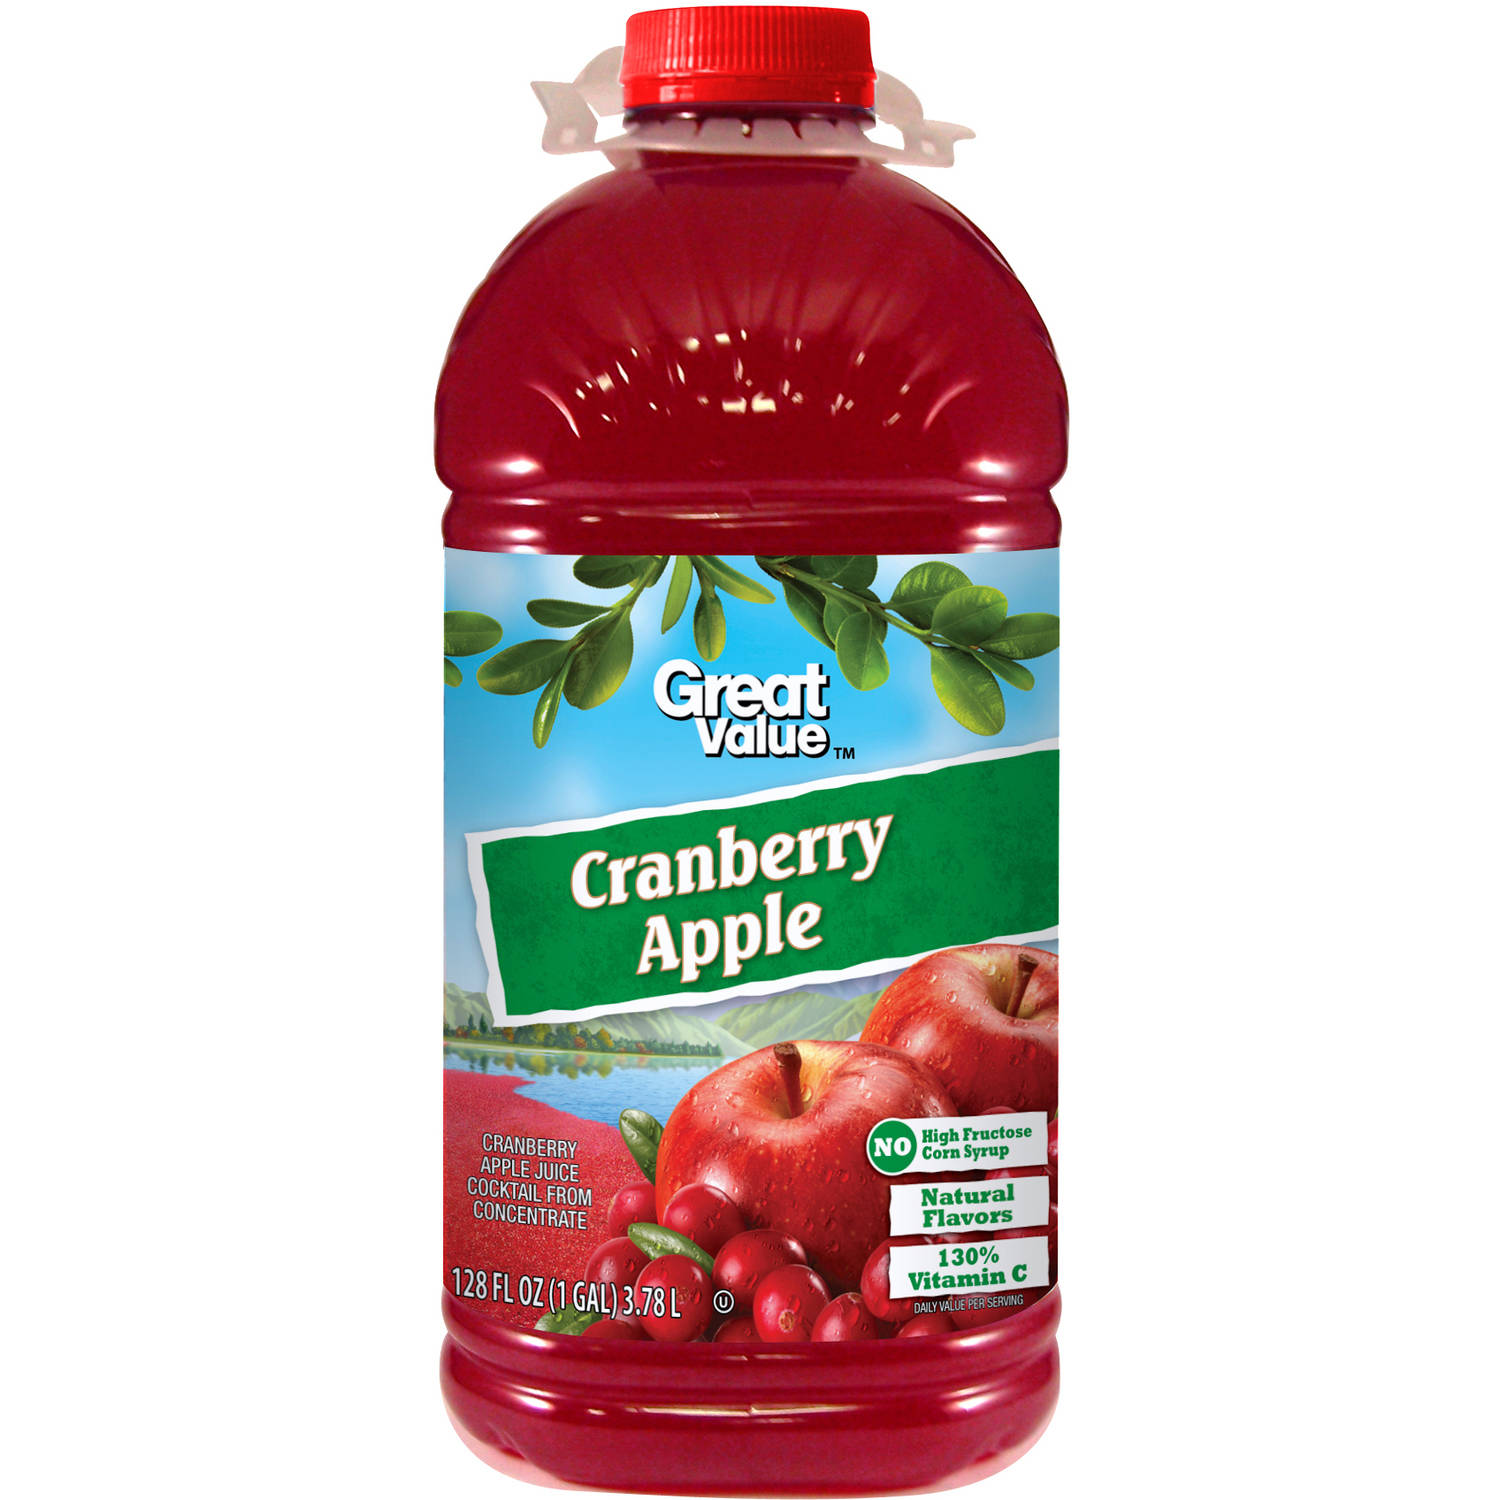 Great Value Cranberry Apple Juice, 128 fl oz